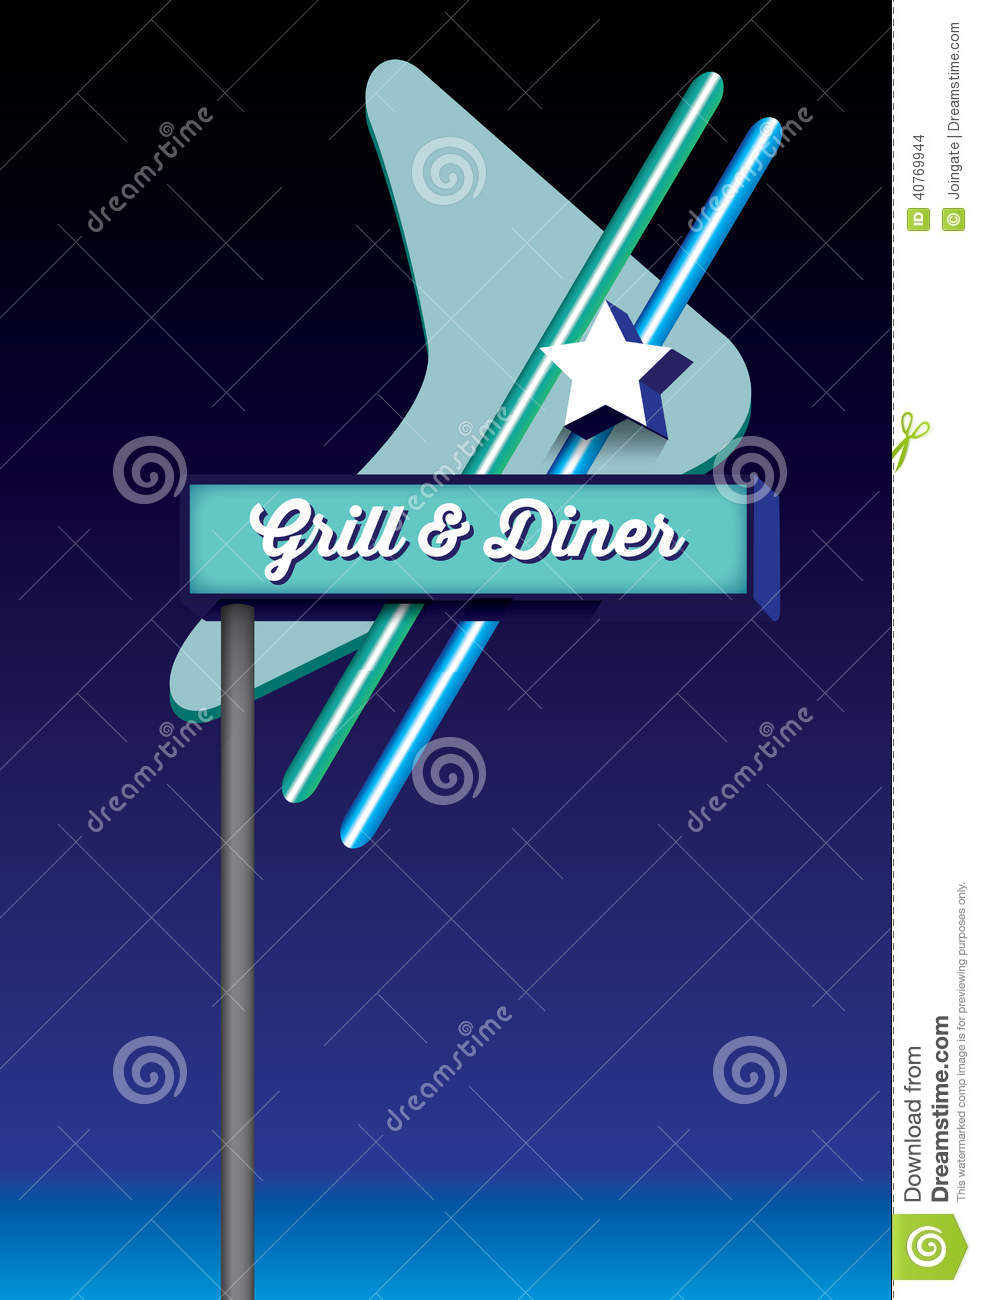 Art deco style retro vintage diner signage stock vector for Style retro deco